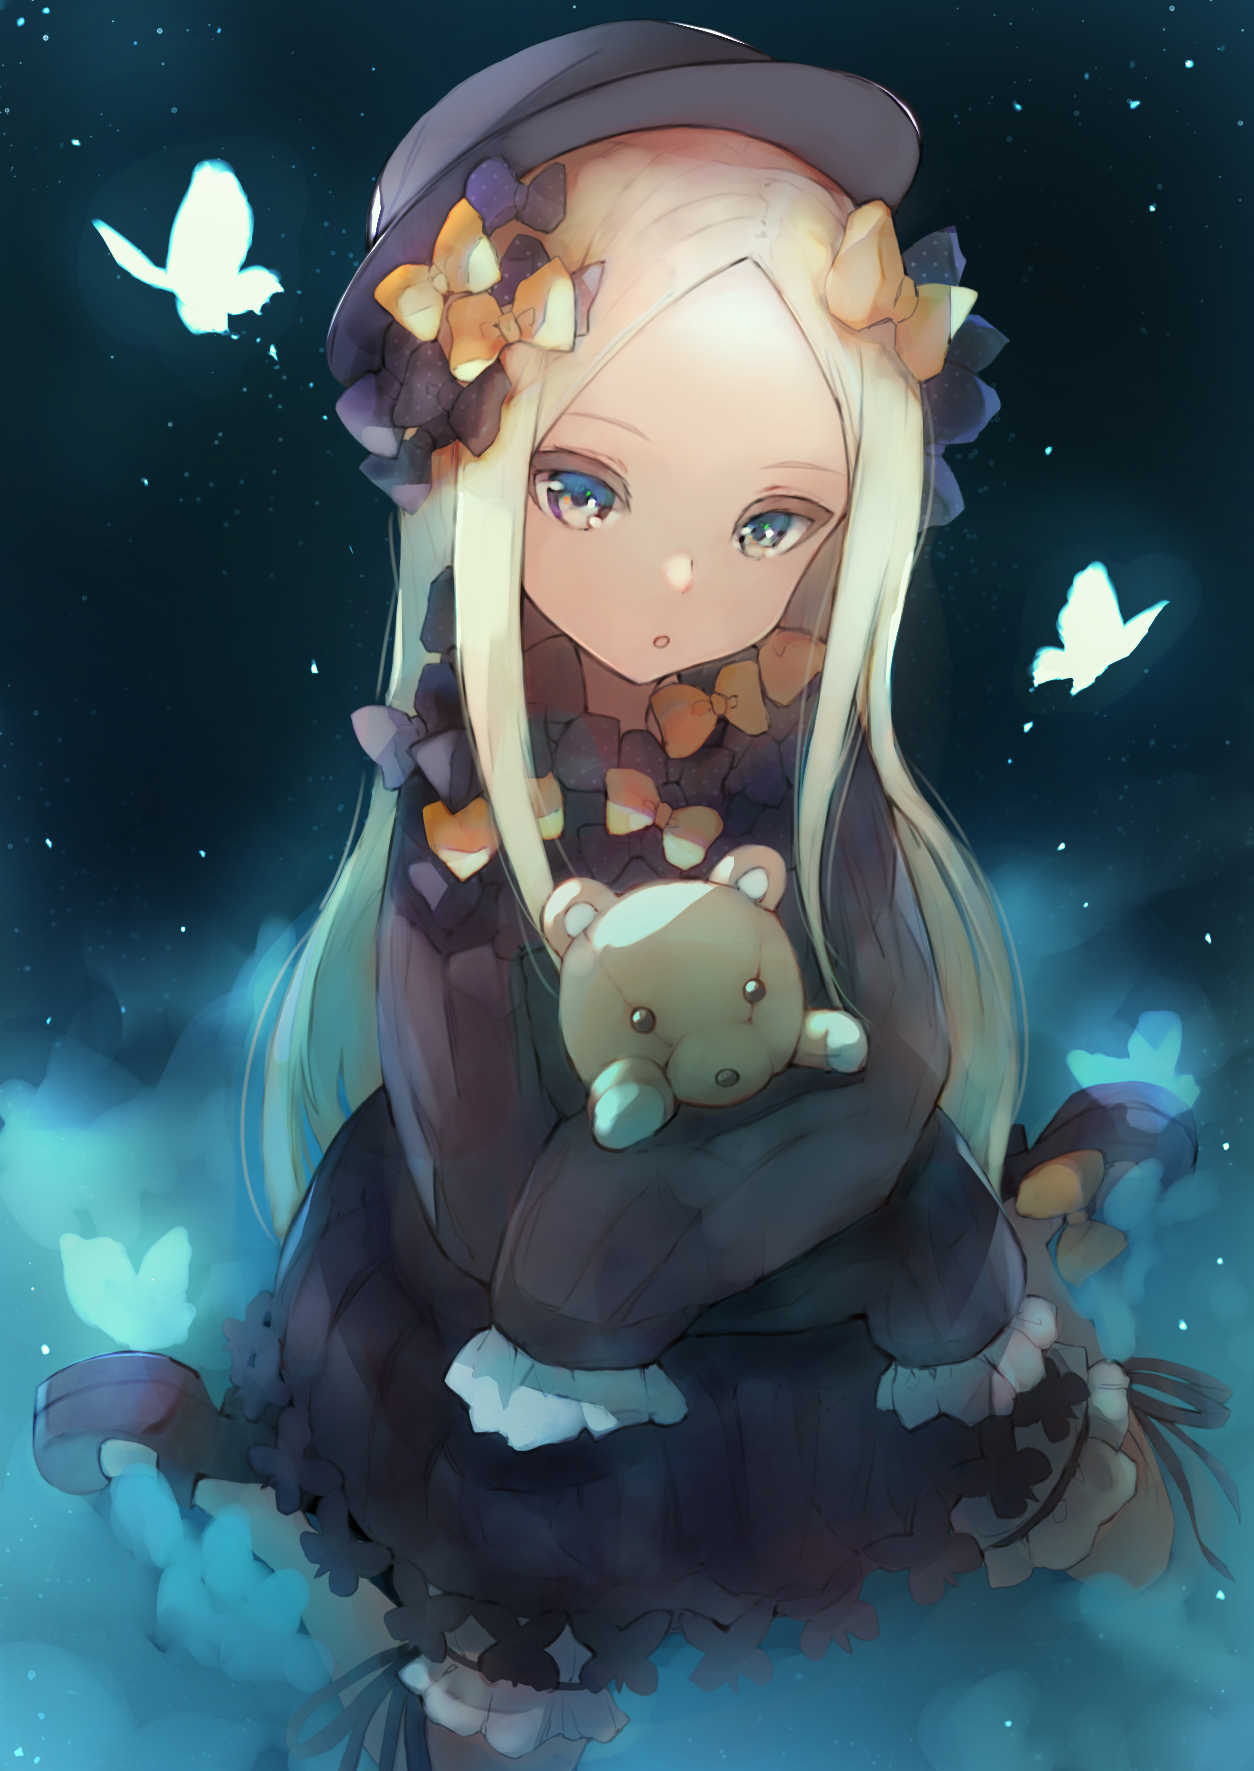 1girl :o abigail_williams_(fate/grand_order) bana_(stand_flower) bangs black_bow black_headwear blonde_hair blue_butterfly blue_eyes bow bug butterfly commentary_request fate/grand_order fate_(series) hair_bow highres insect long_hair looking_at_viewer object_hug orange_bow parted_bangs sleeves_past_fingers sleeves_past_wrists solo stuffed_animal stuffed_toy teddy_bear white_butterfly